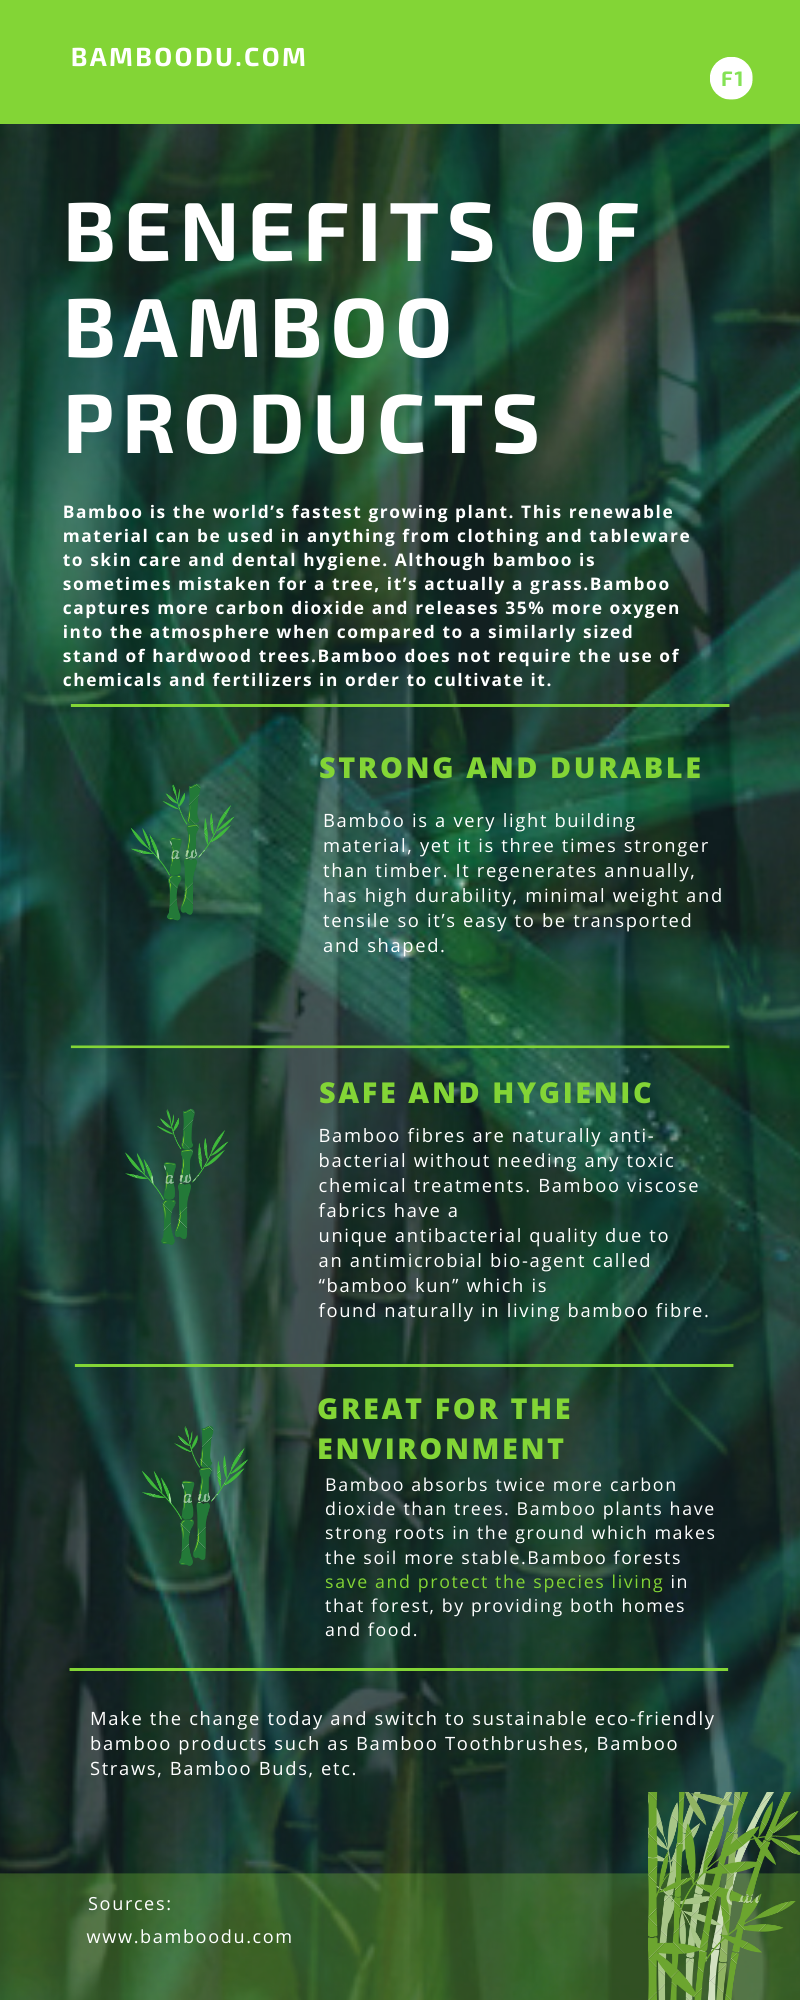 Why to choose bamboo products